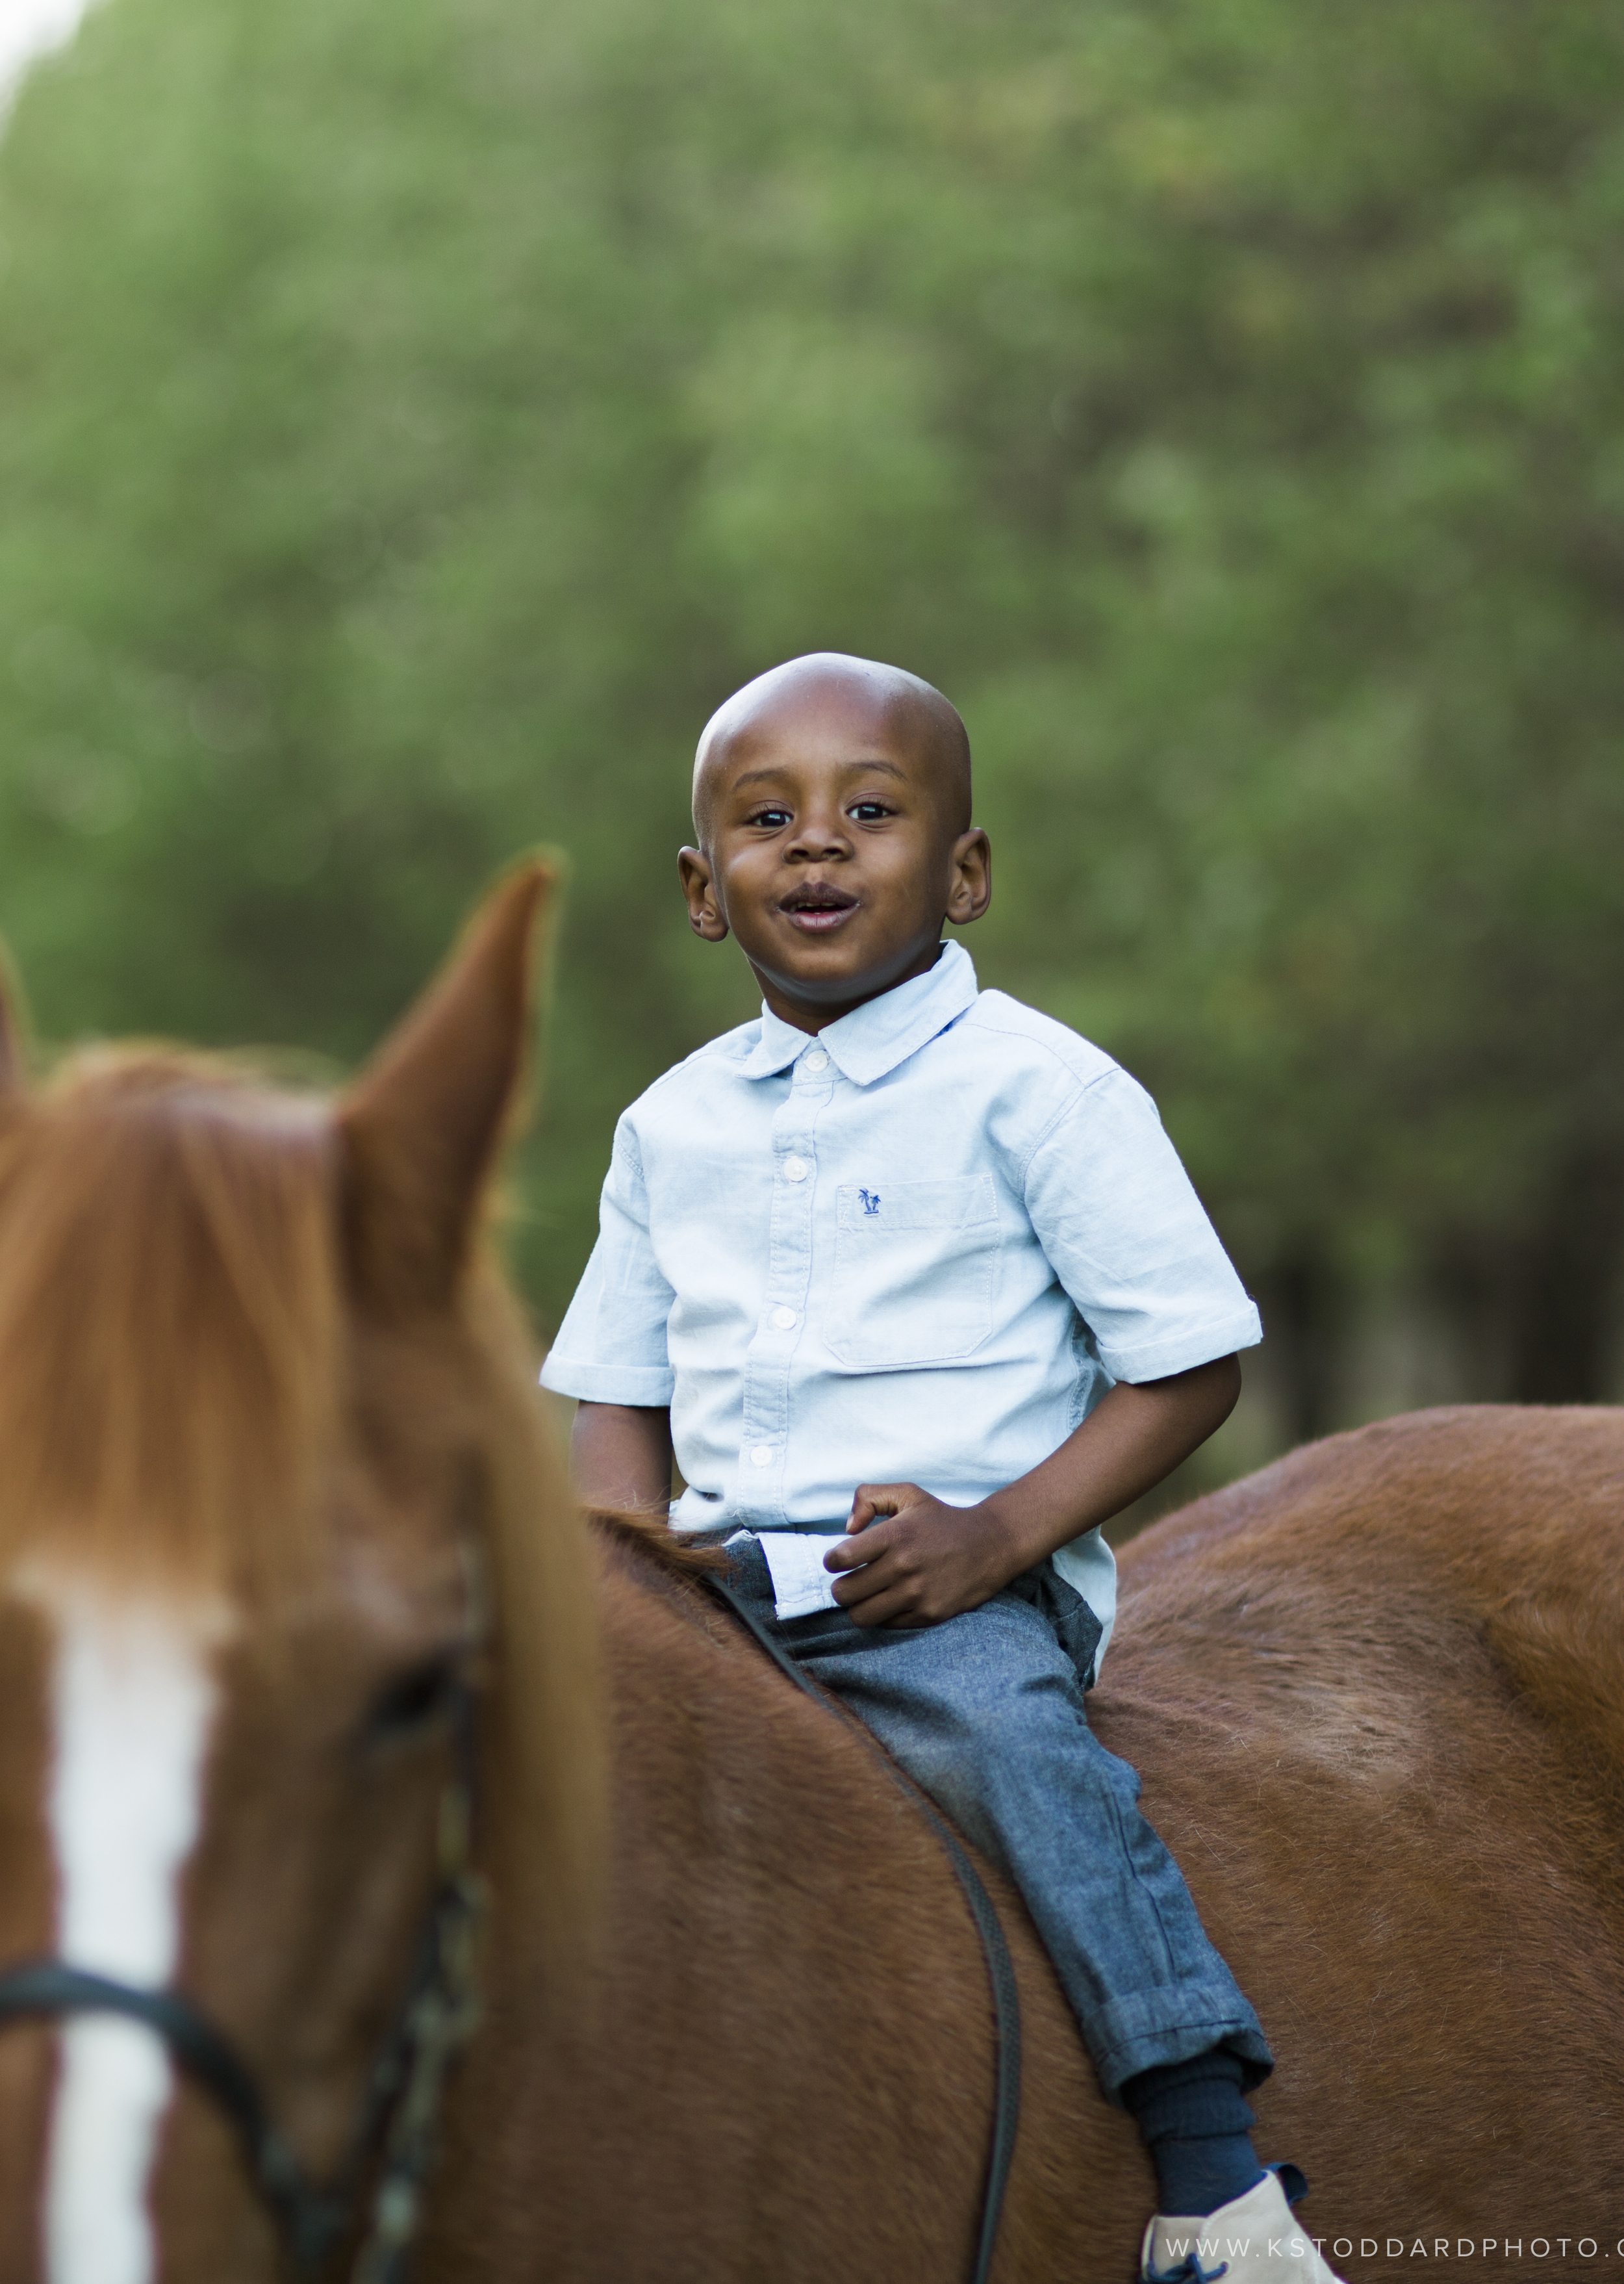 K'meil and Family - St. Jude Children's Research Hospital - Memphis - K. Stoddard Photography 030.jpg